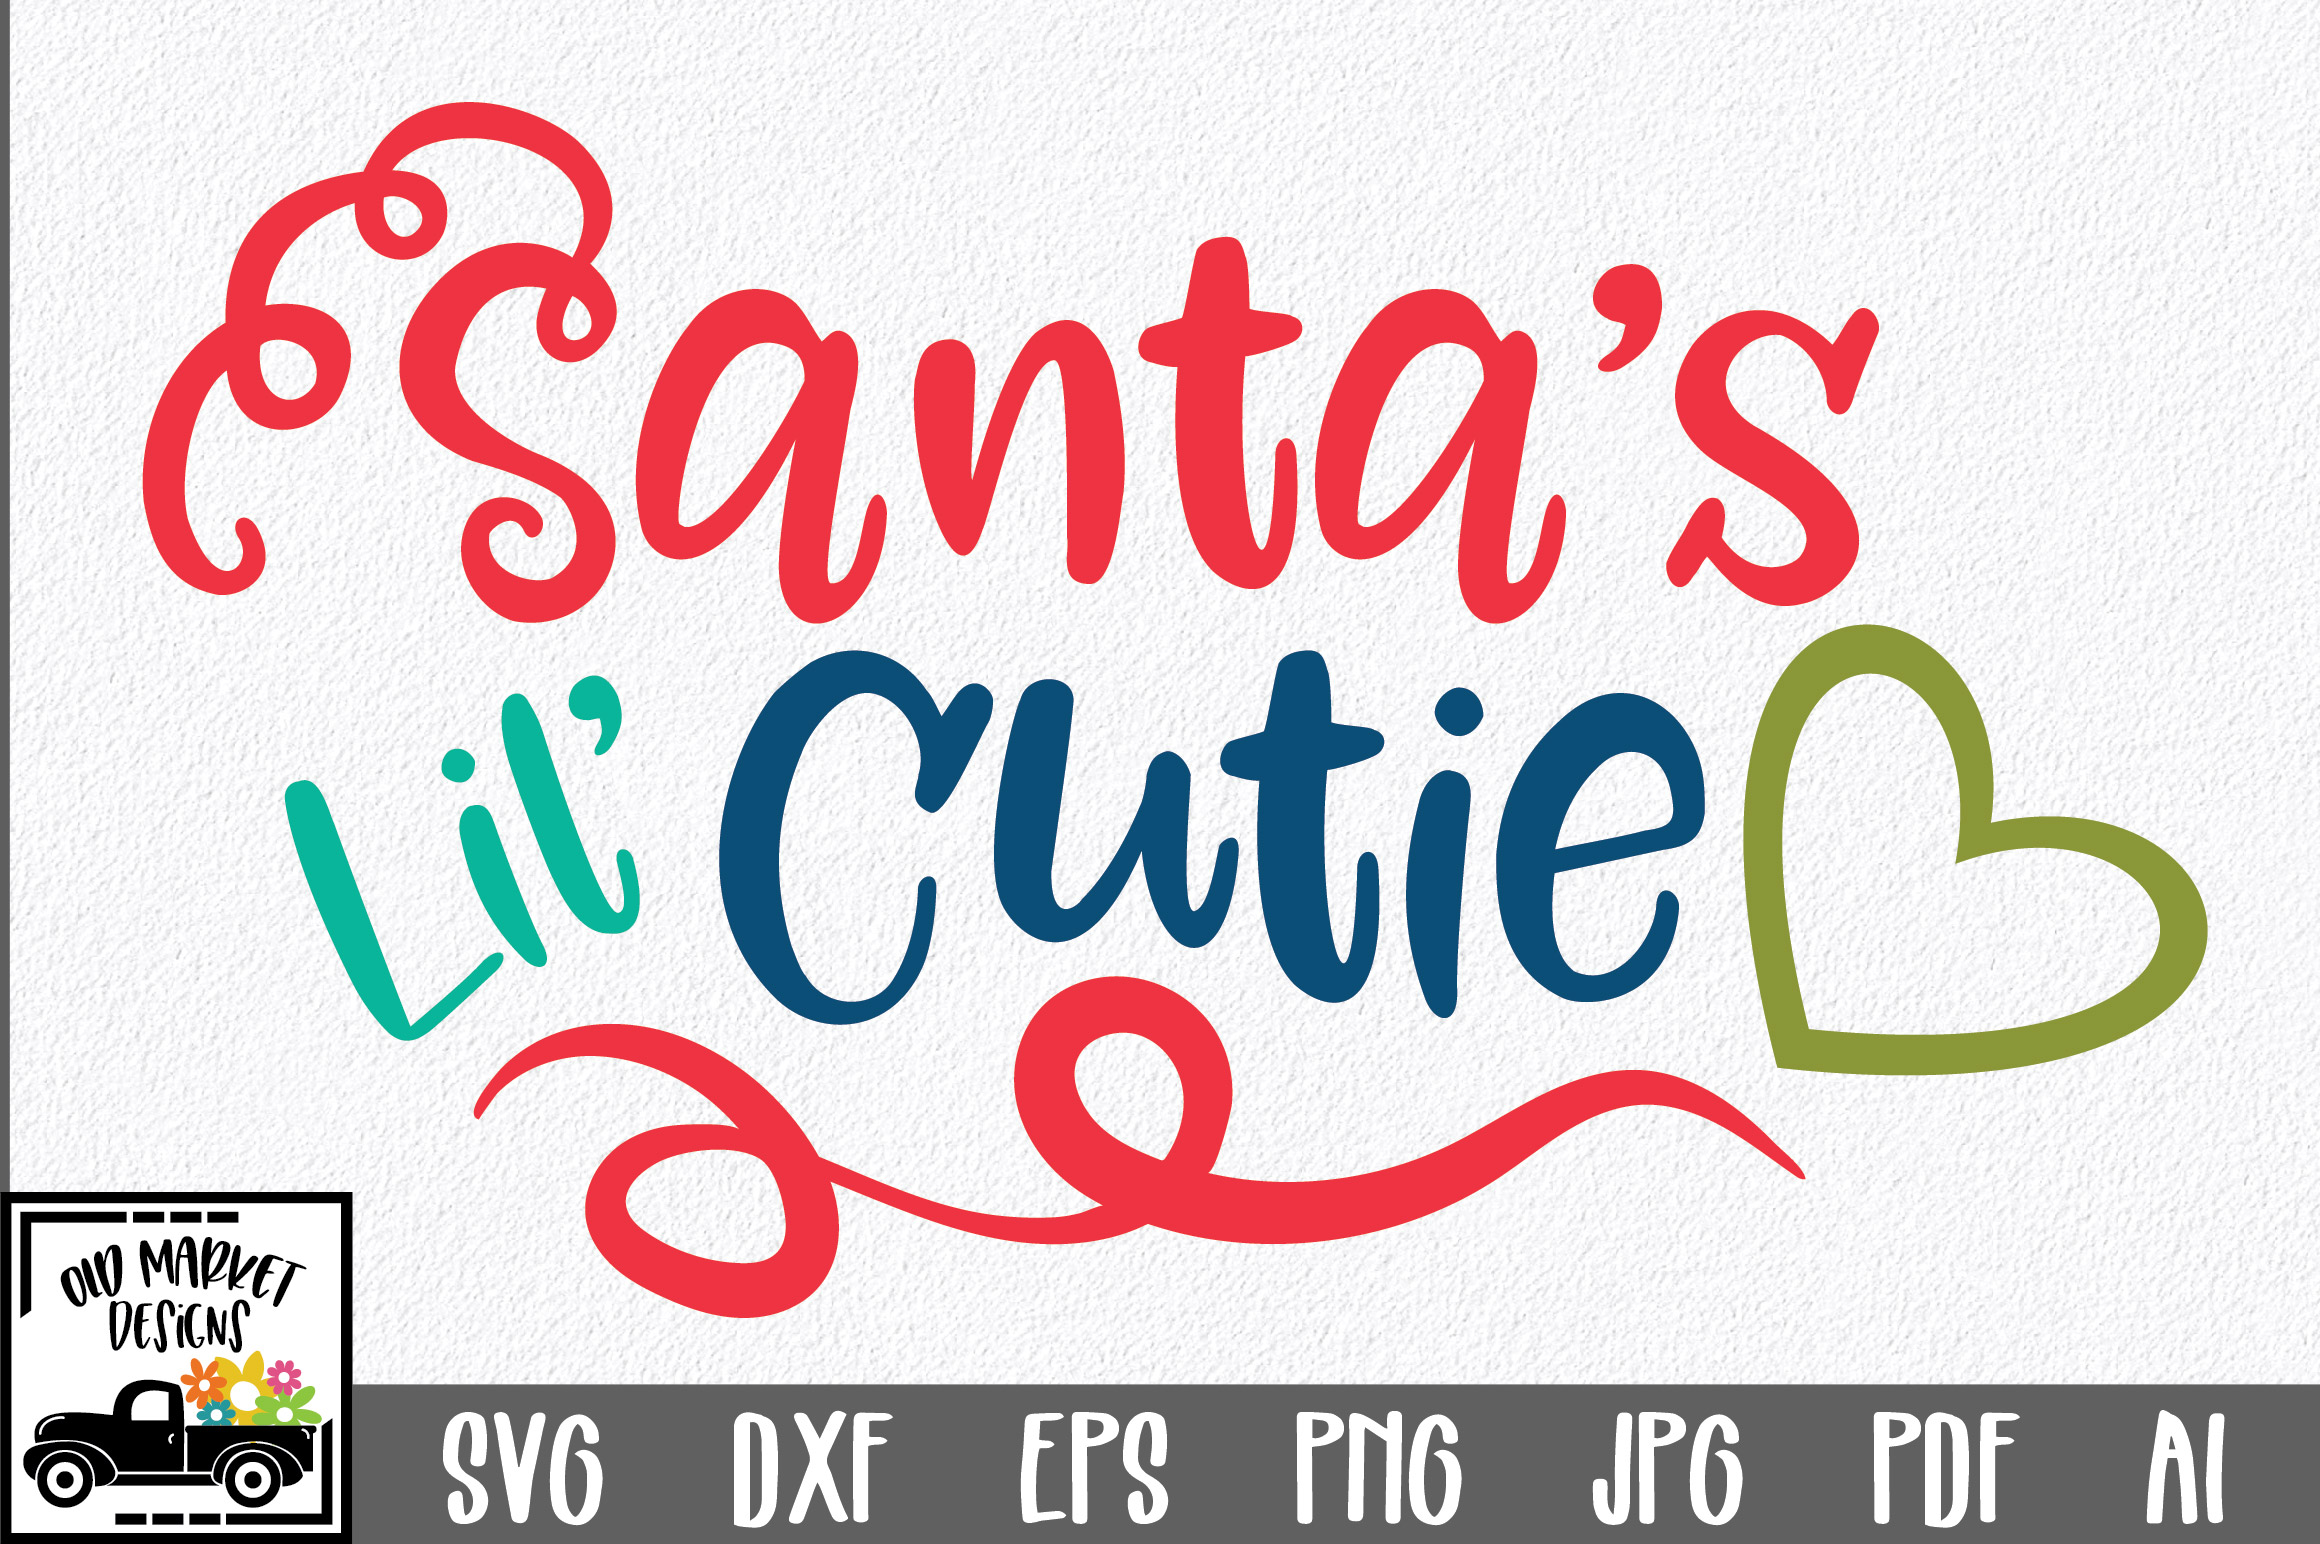 Download Free Christmas Santa S Lil Cutie Graphic By Oldmarketdesigns for Cricut Explore, Silhouette and other cutting machines.